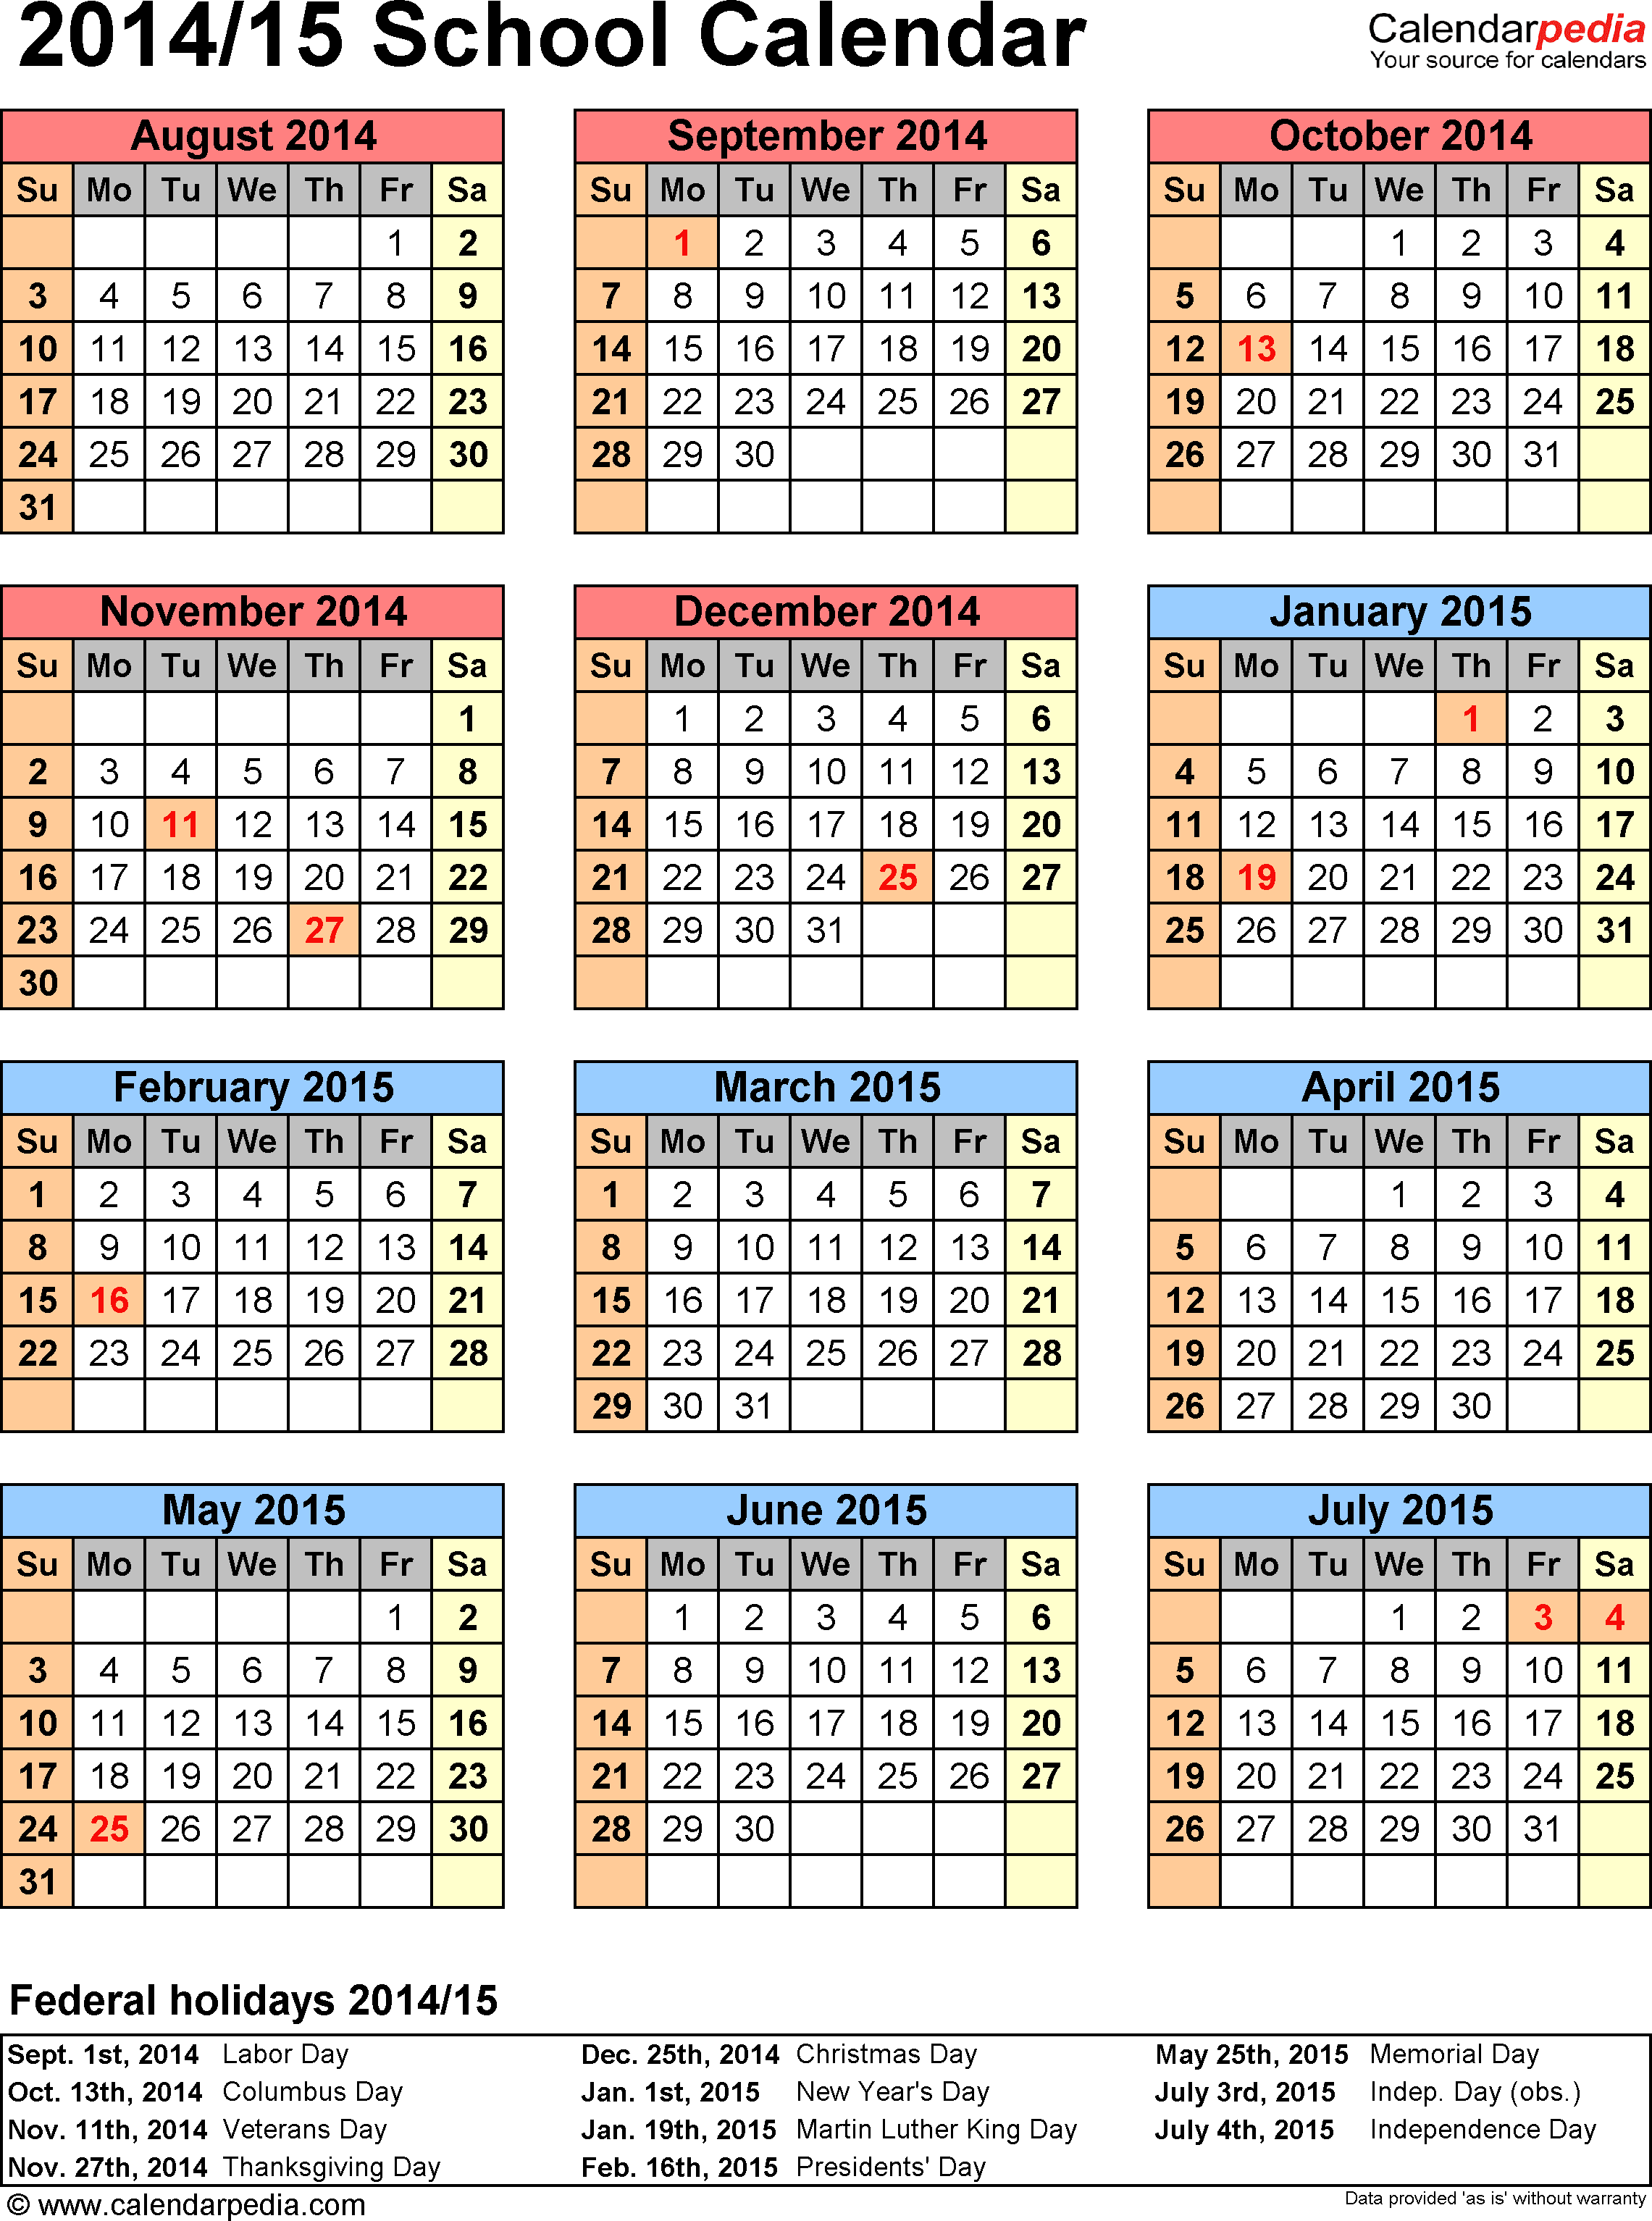 Template 6: School calendar 2014/15, for Microsoft Excel (.xlsx file), portrait, 1 page, year at a glance